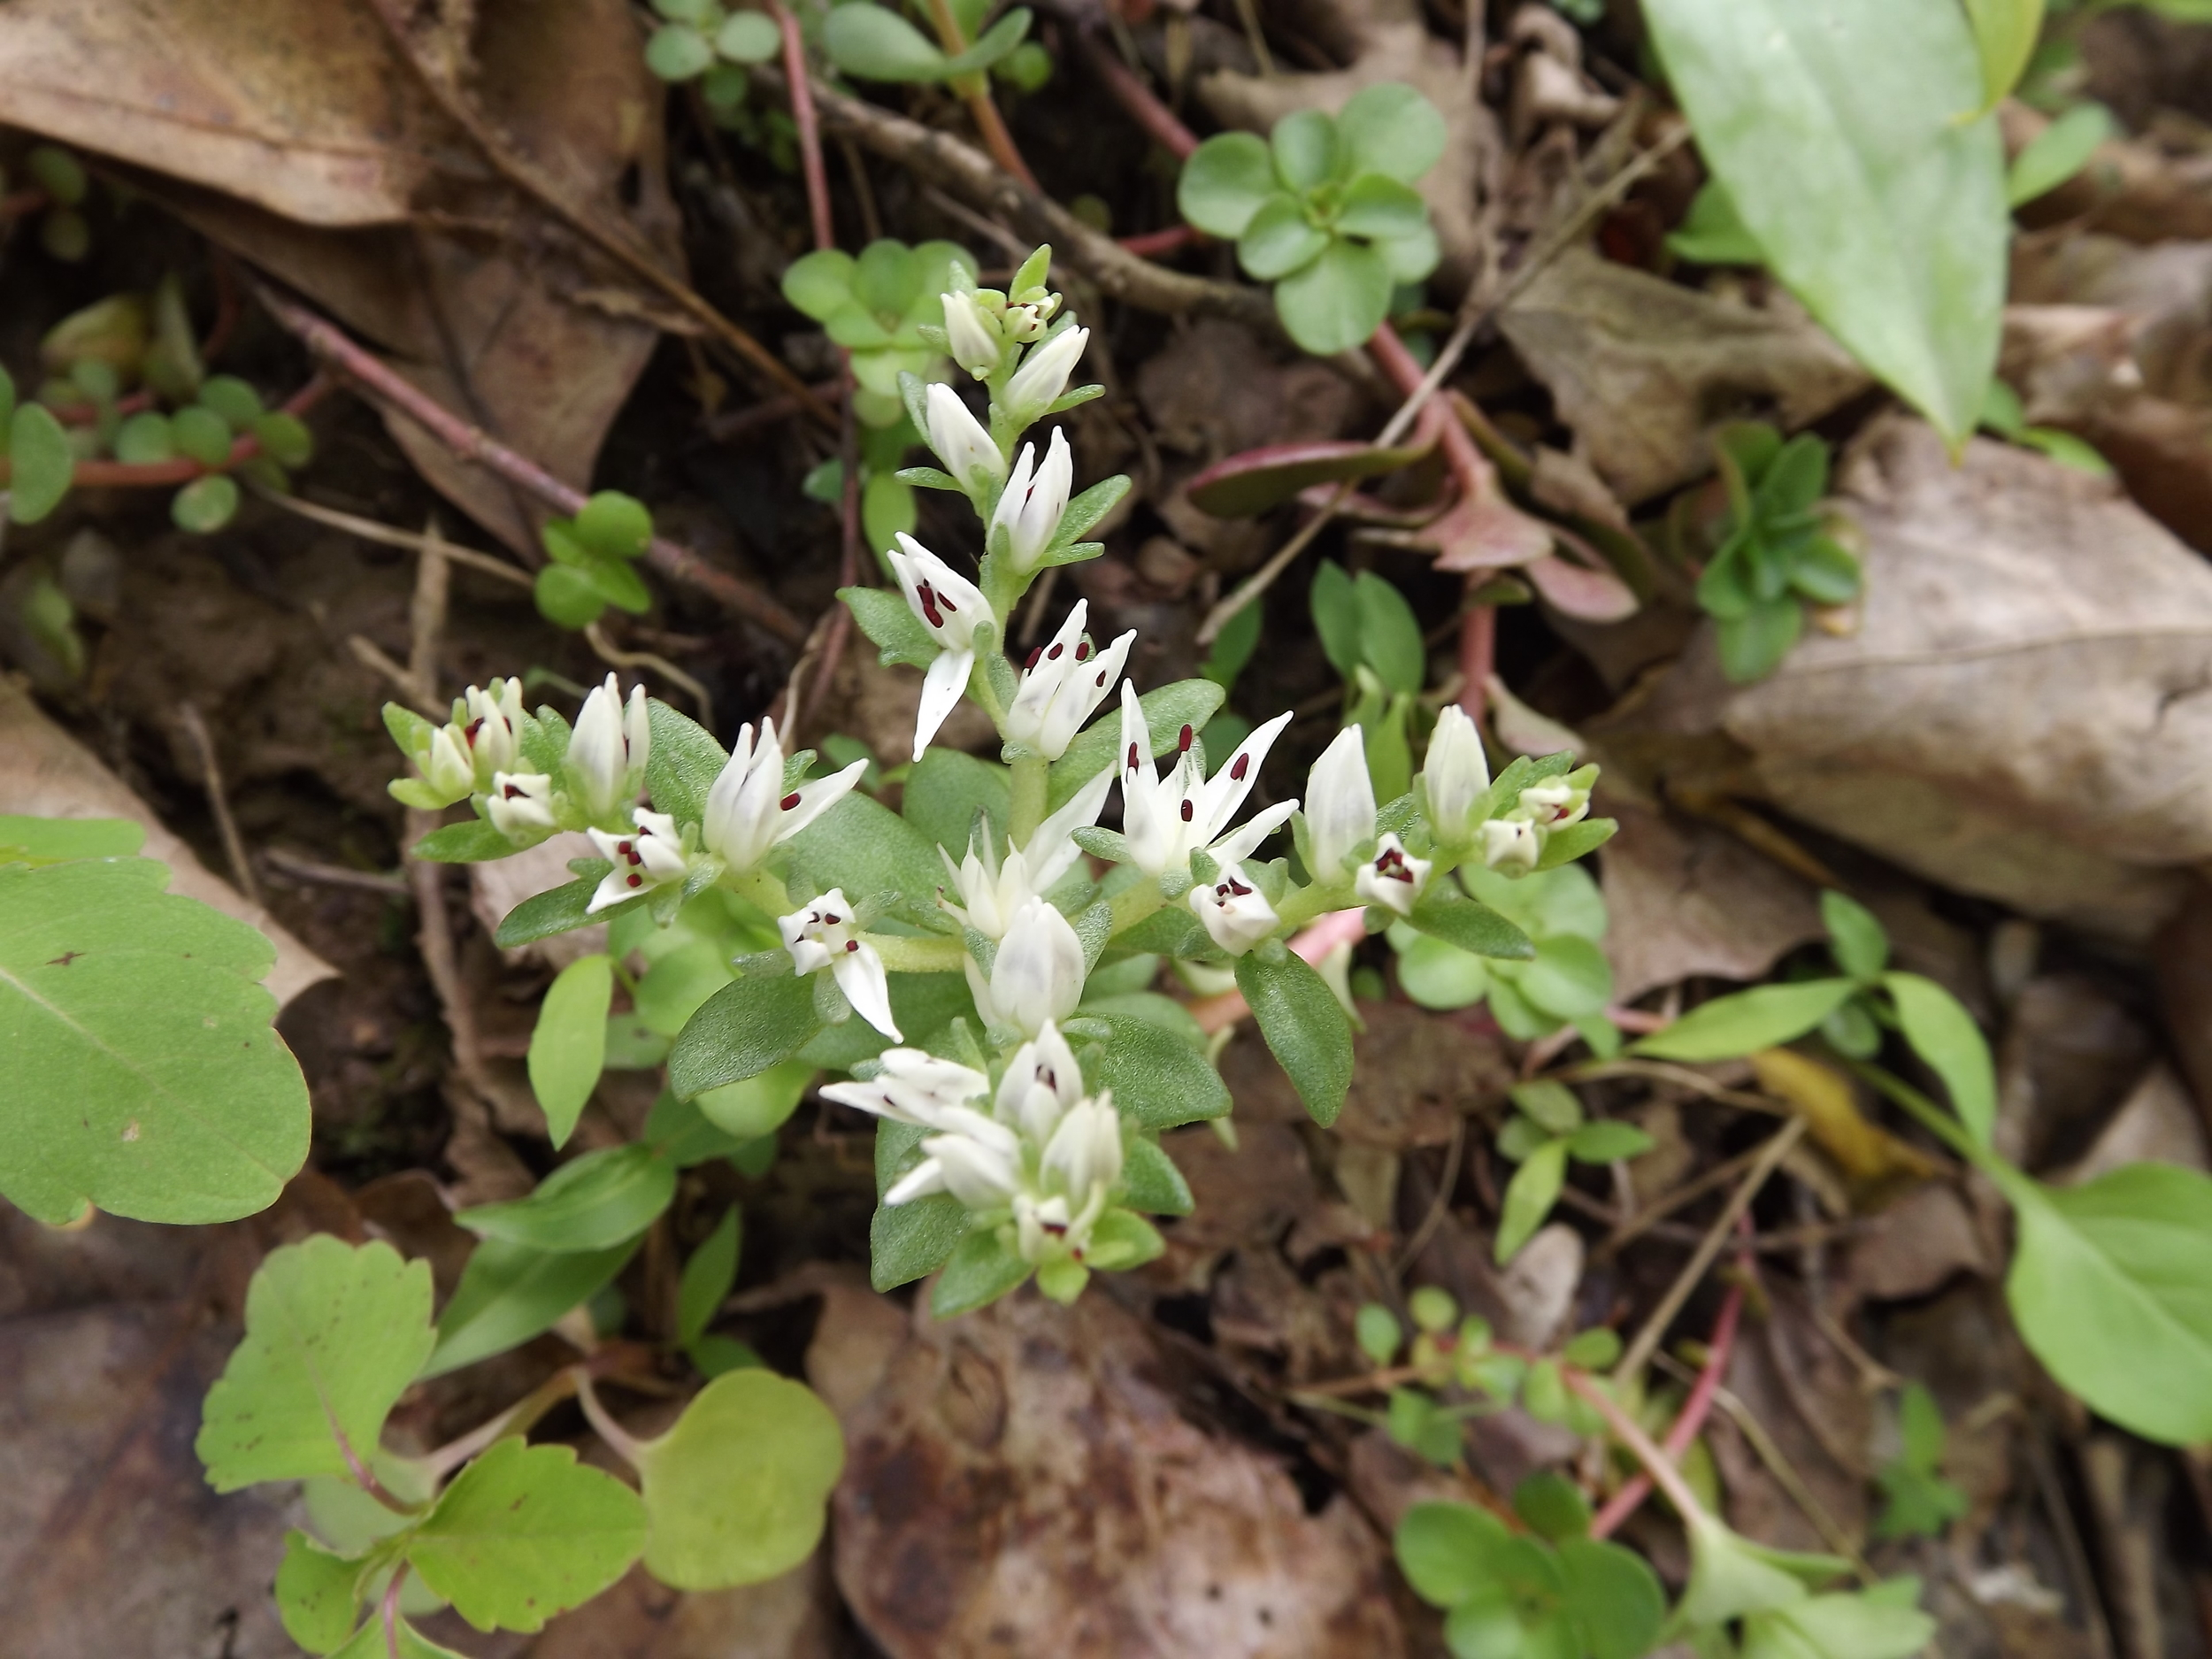 """Woodland Stonecrop ( Sedum ternatum ) - Woodland Stonecrop is a small """"cluster-like"""" flower that is very low to the ground and easy to miss. Woodland Stonecrop flowers are often found on rock outcroppings, hence their name."""